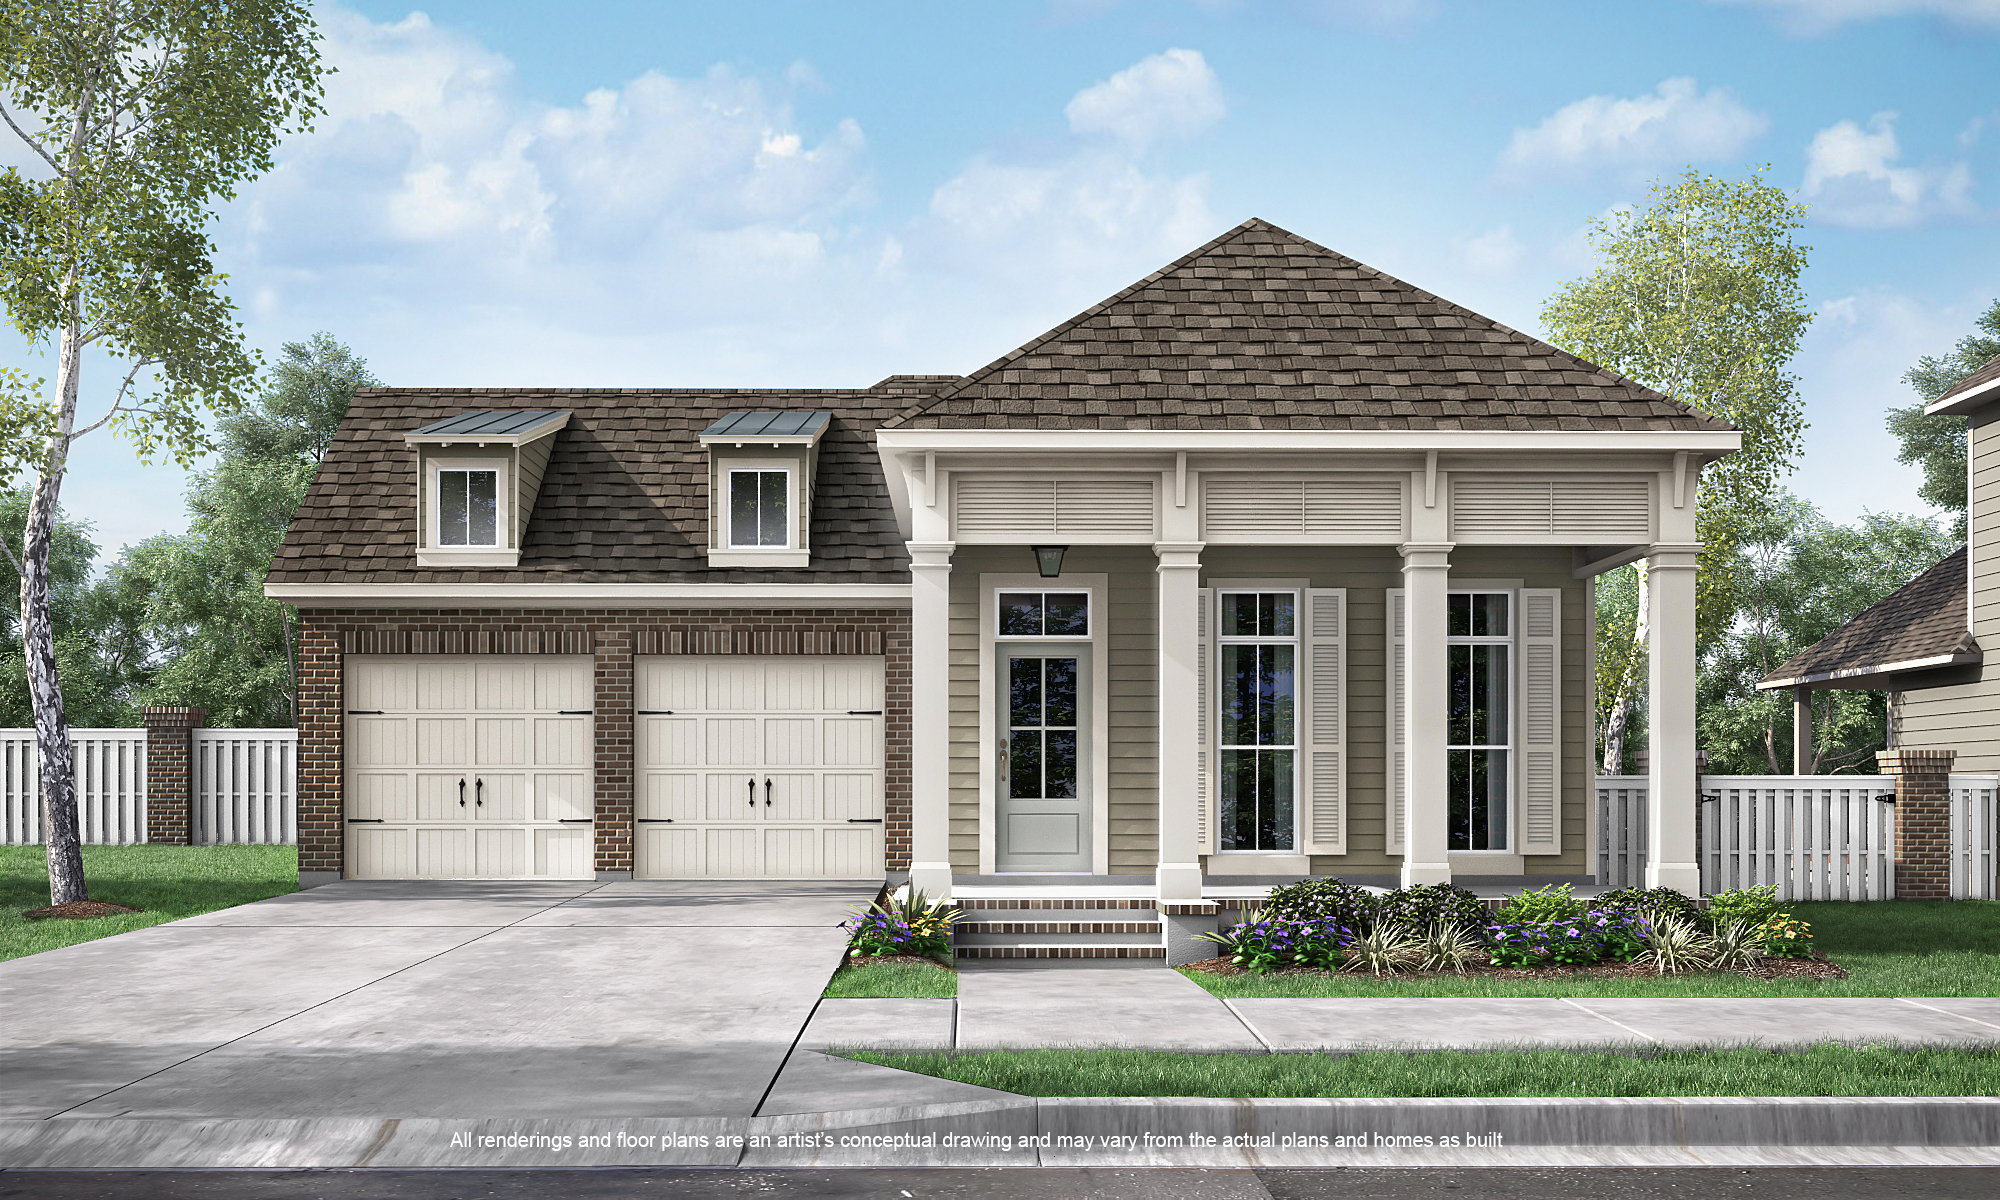 Kennedy - 2,427 SF — Starting from $369,900